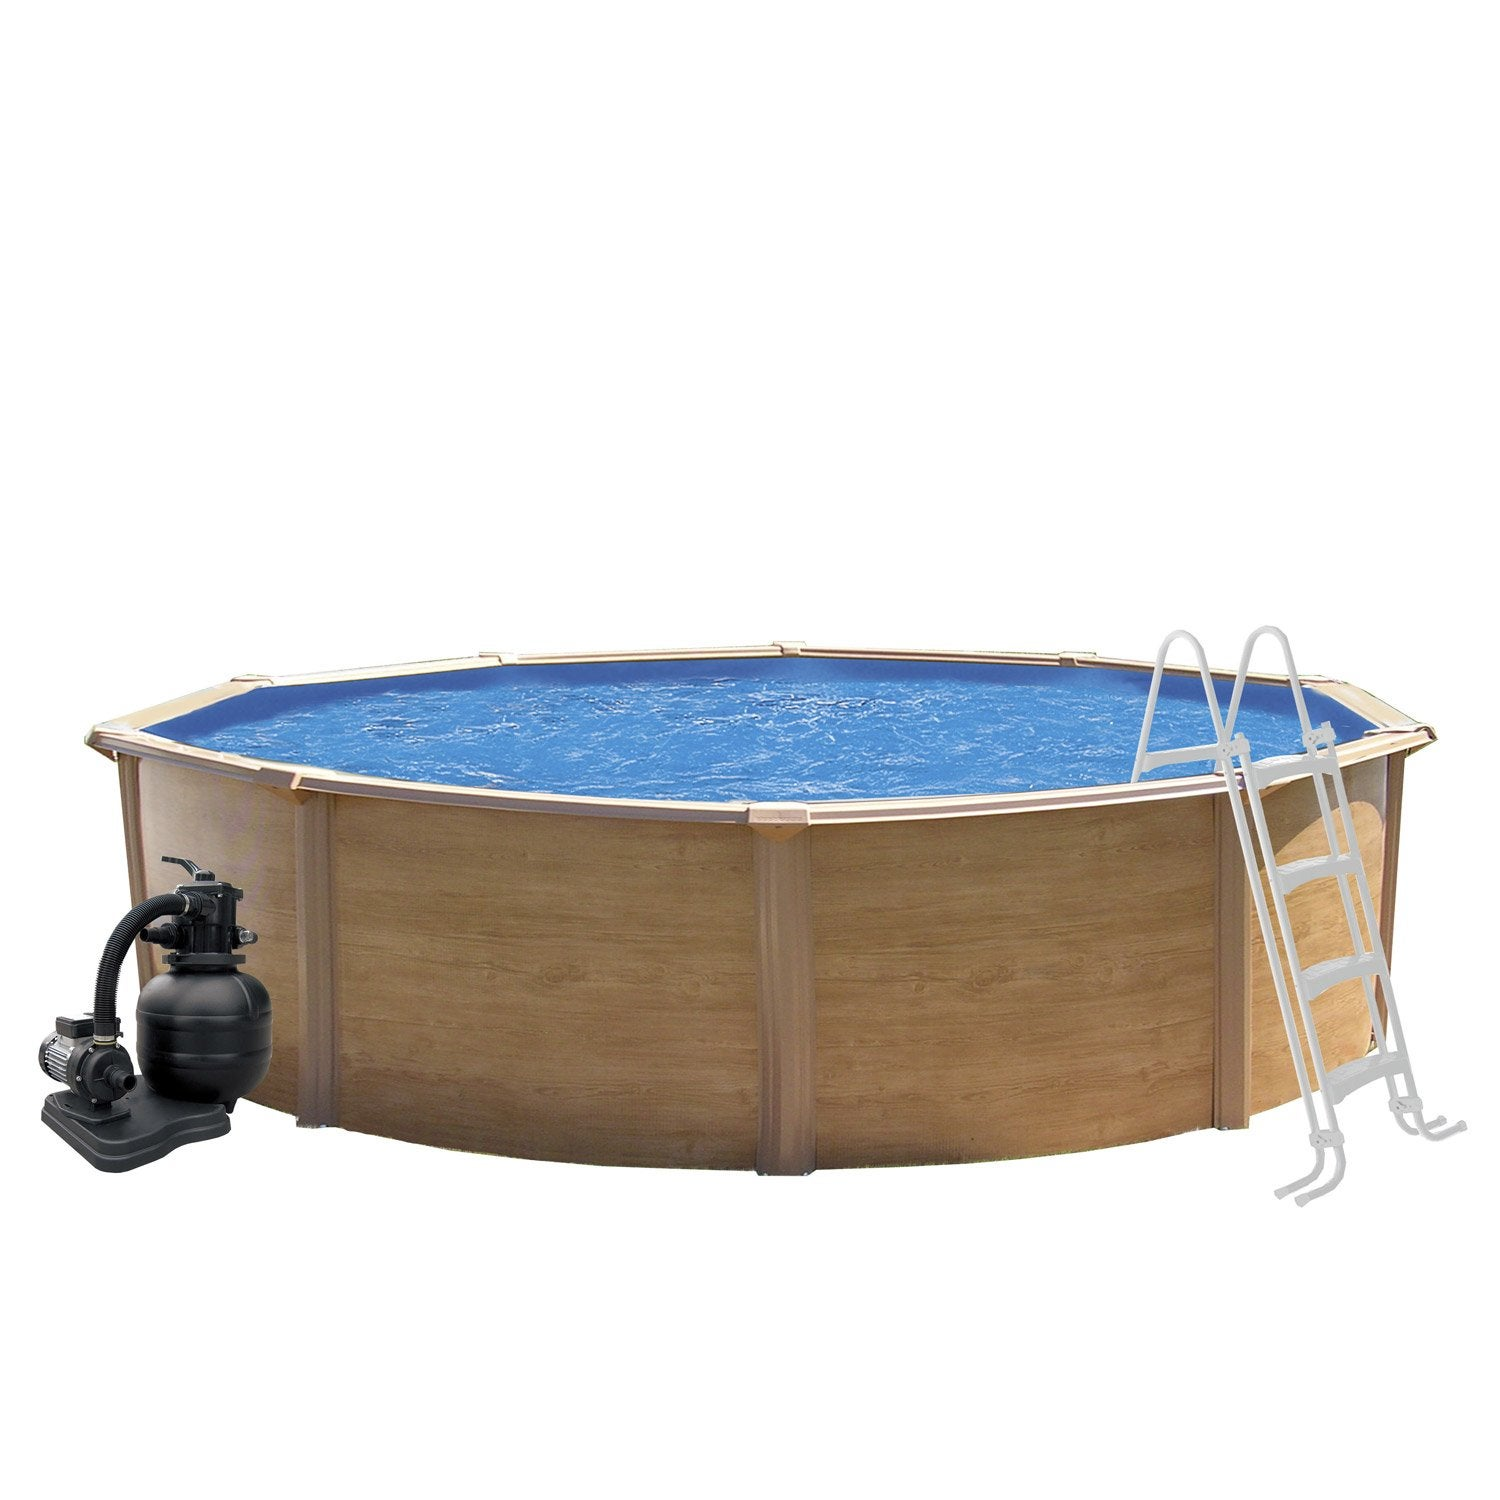 Piscine bois athena leroy merlin for Piscine tubulaire leroy merlin